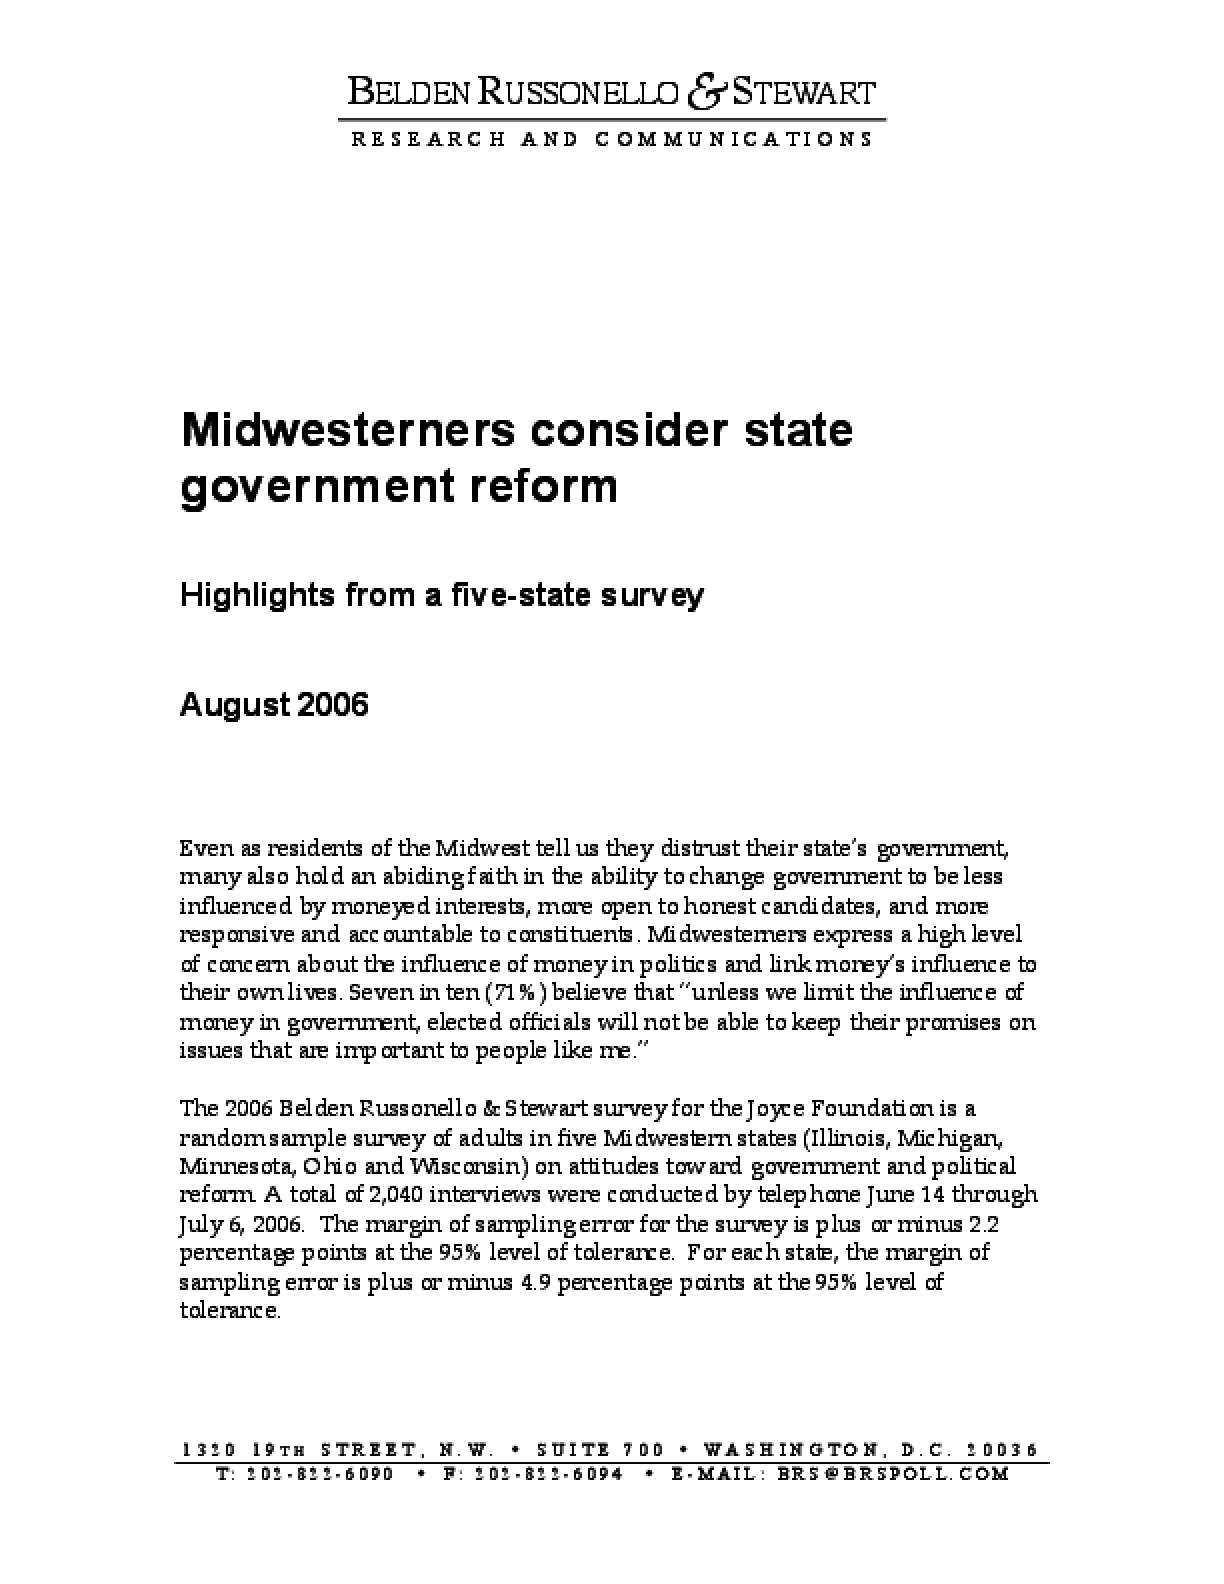 Midwesterners Consider State Government Reform